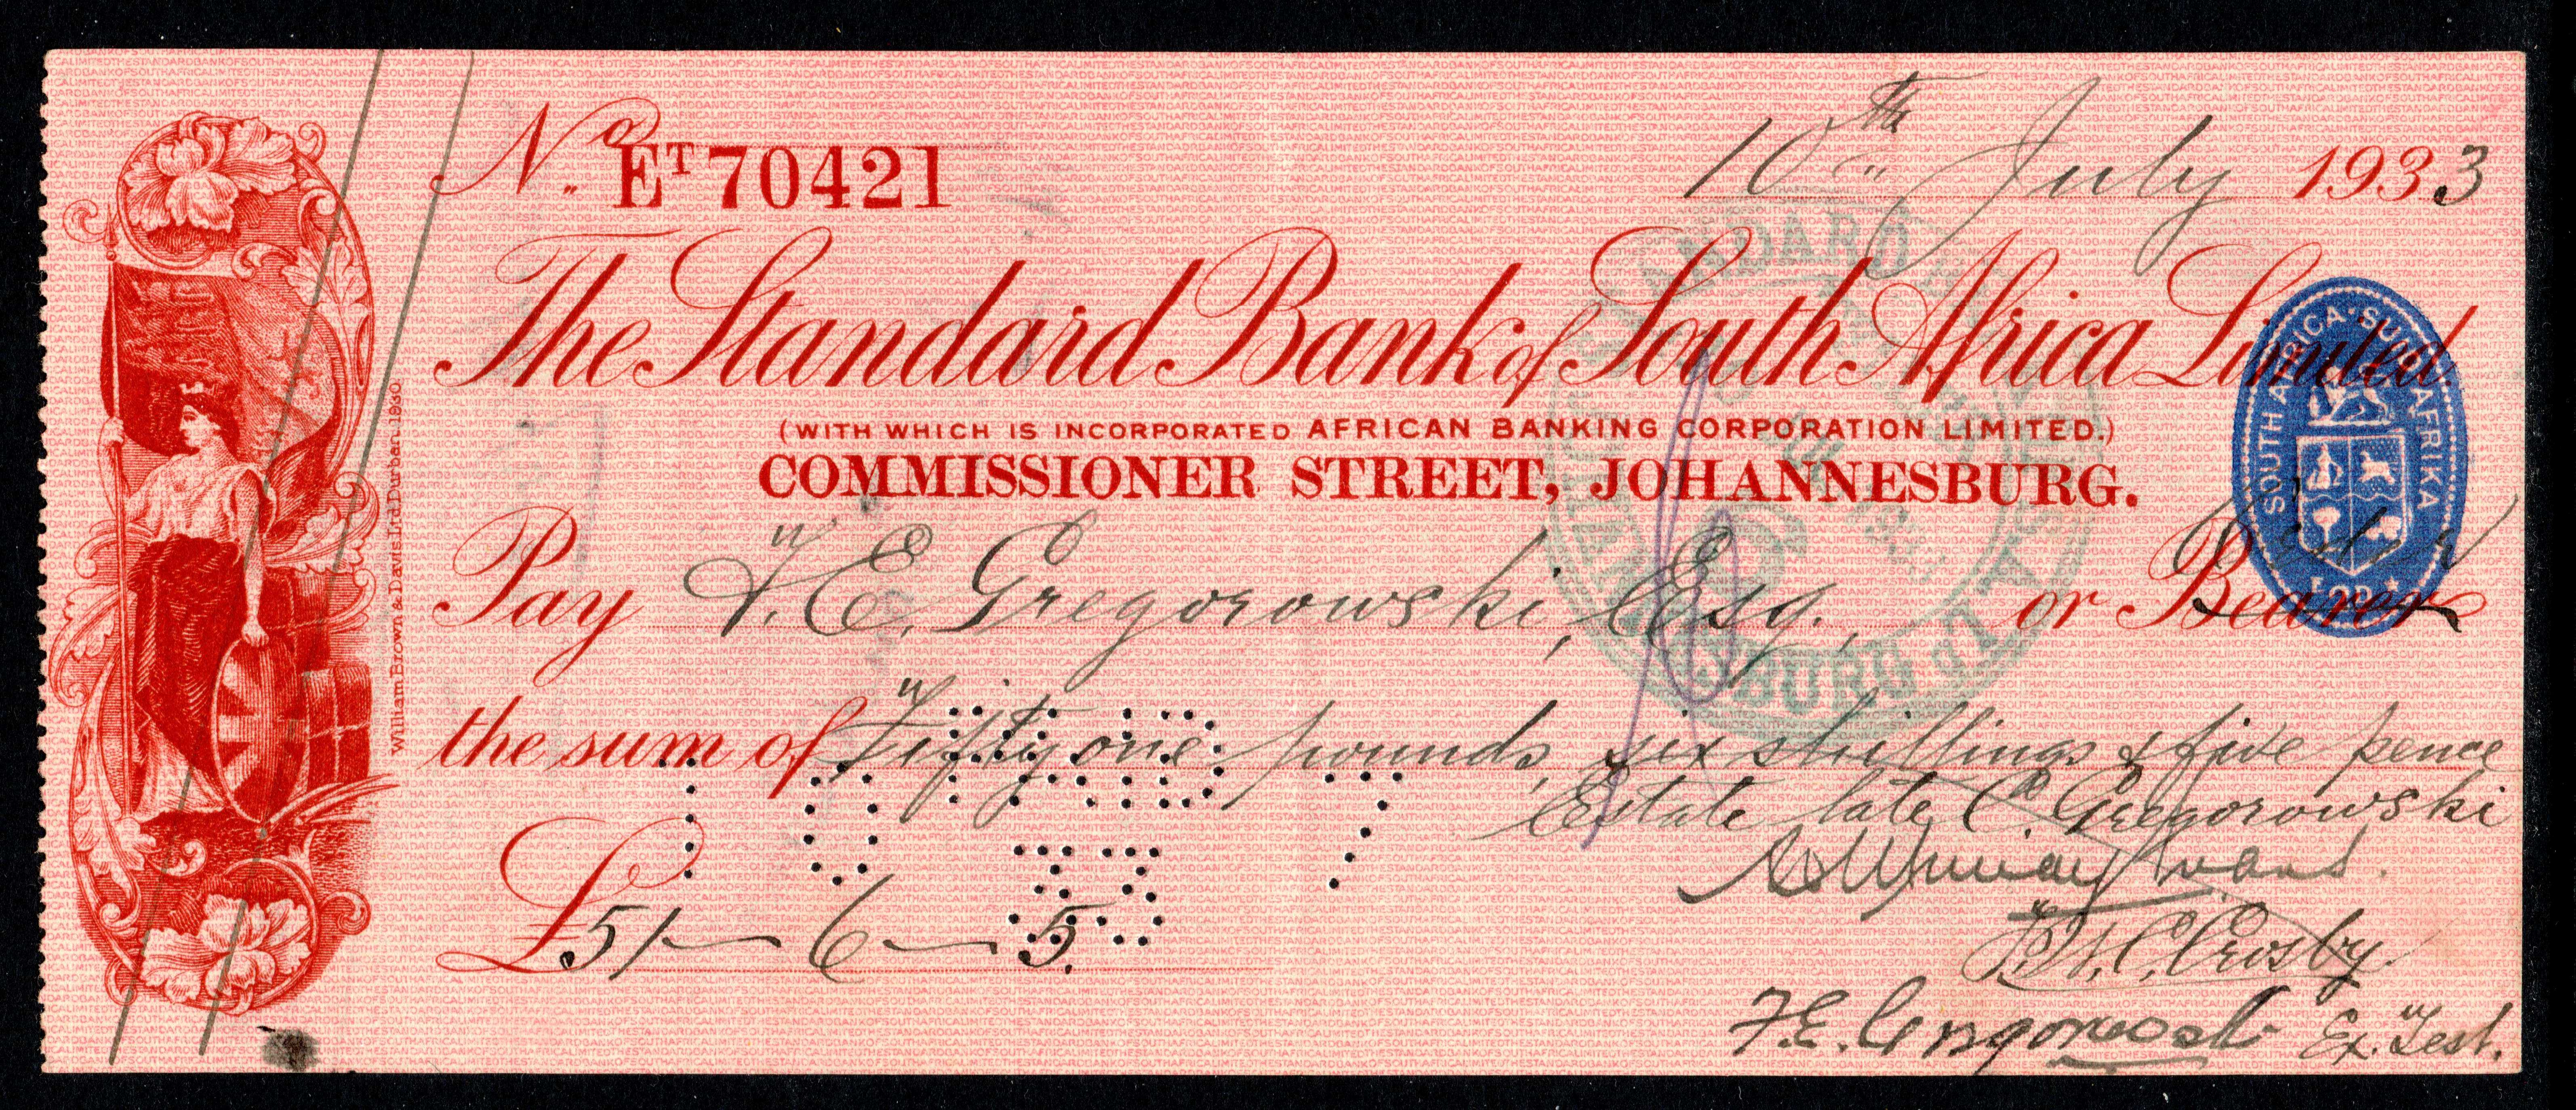 View cheque & deposit images